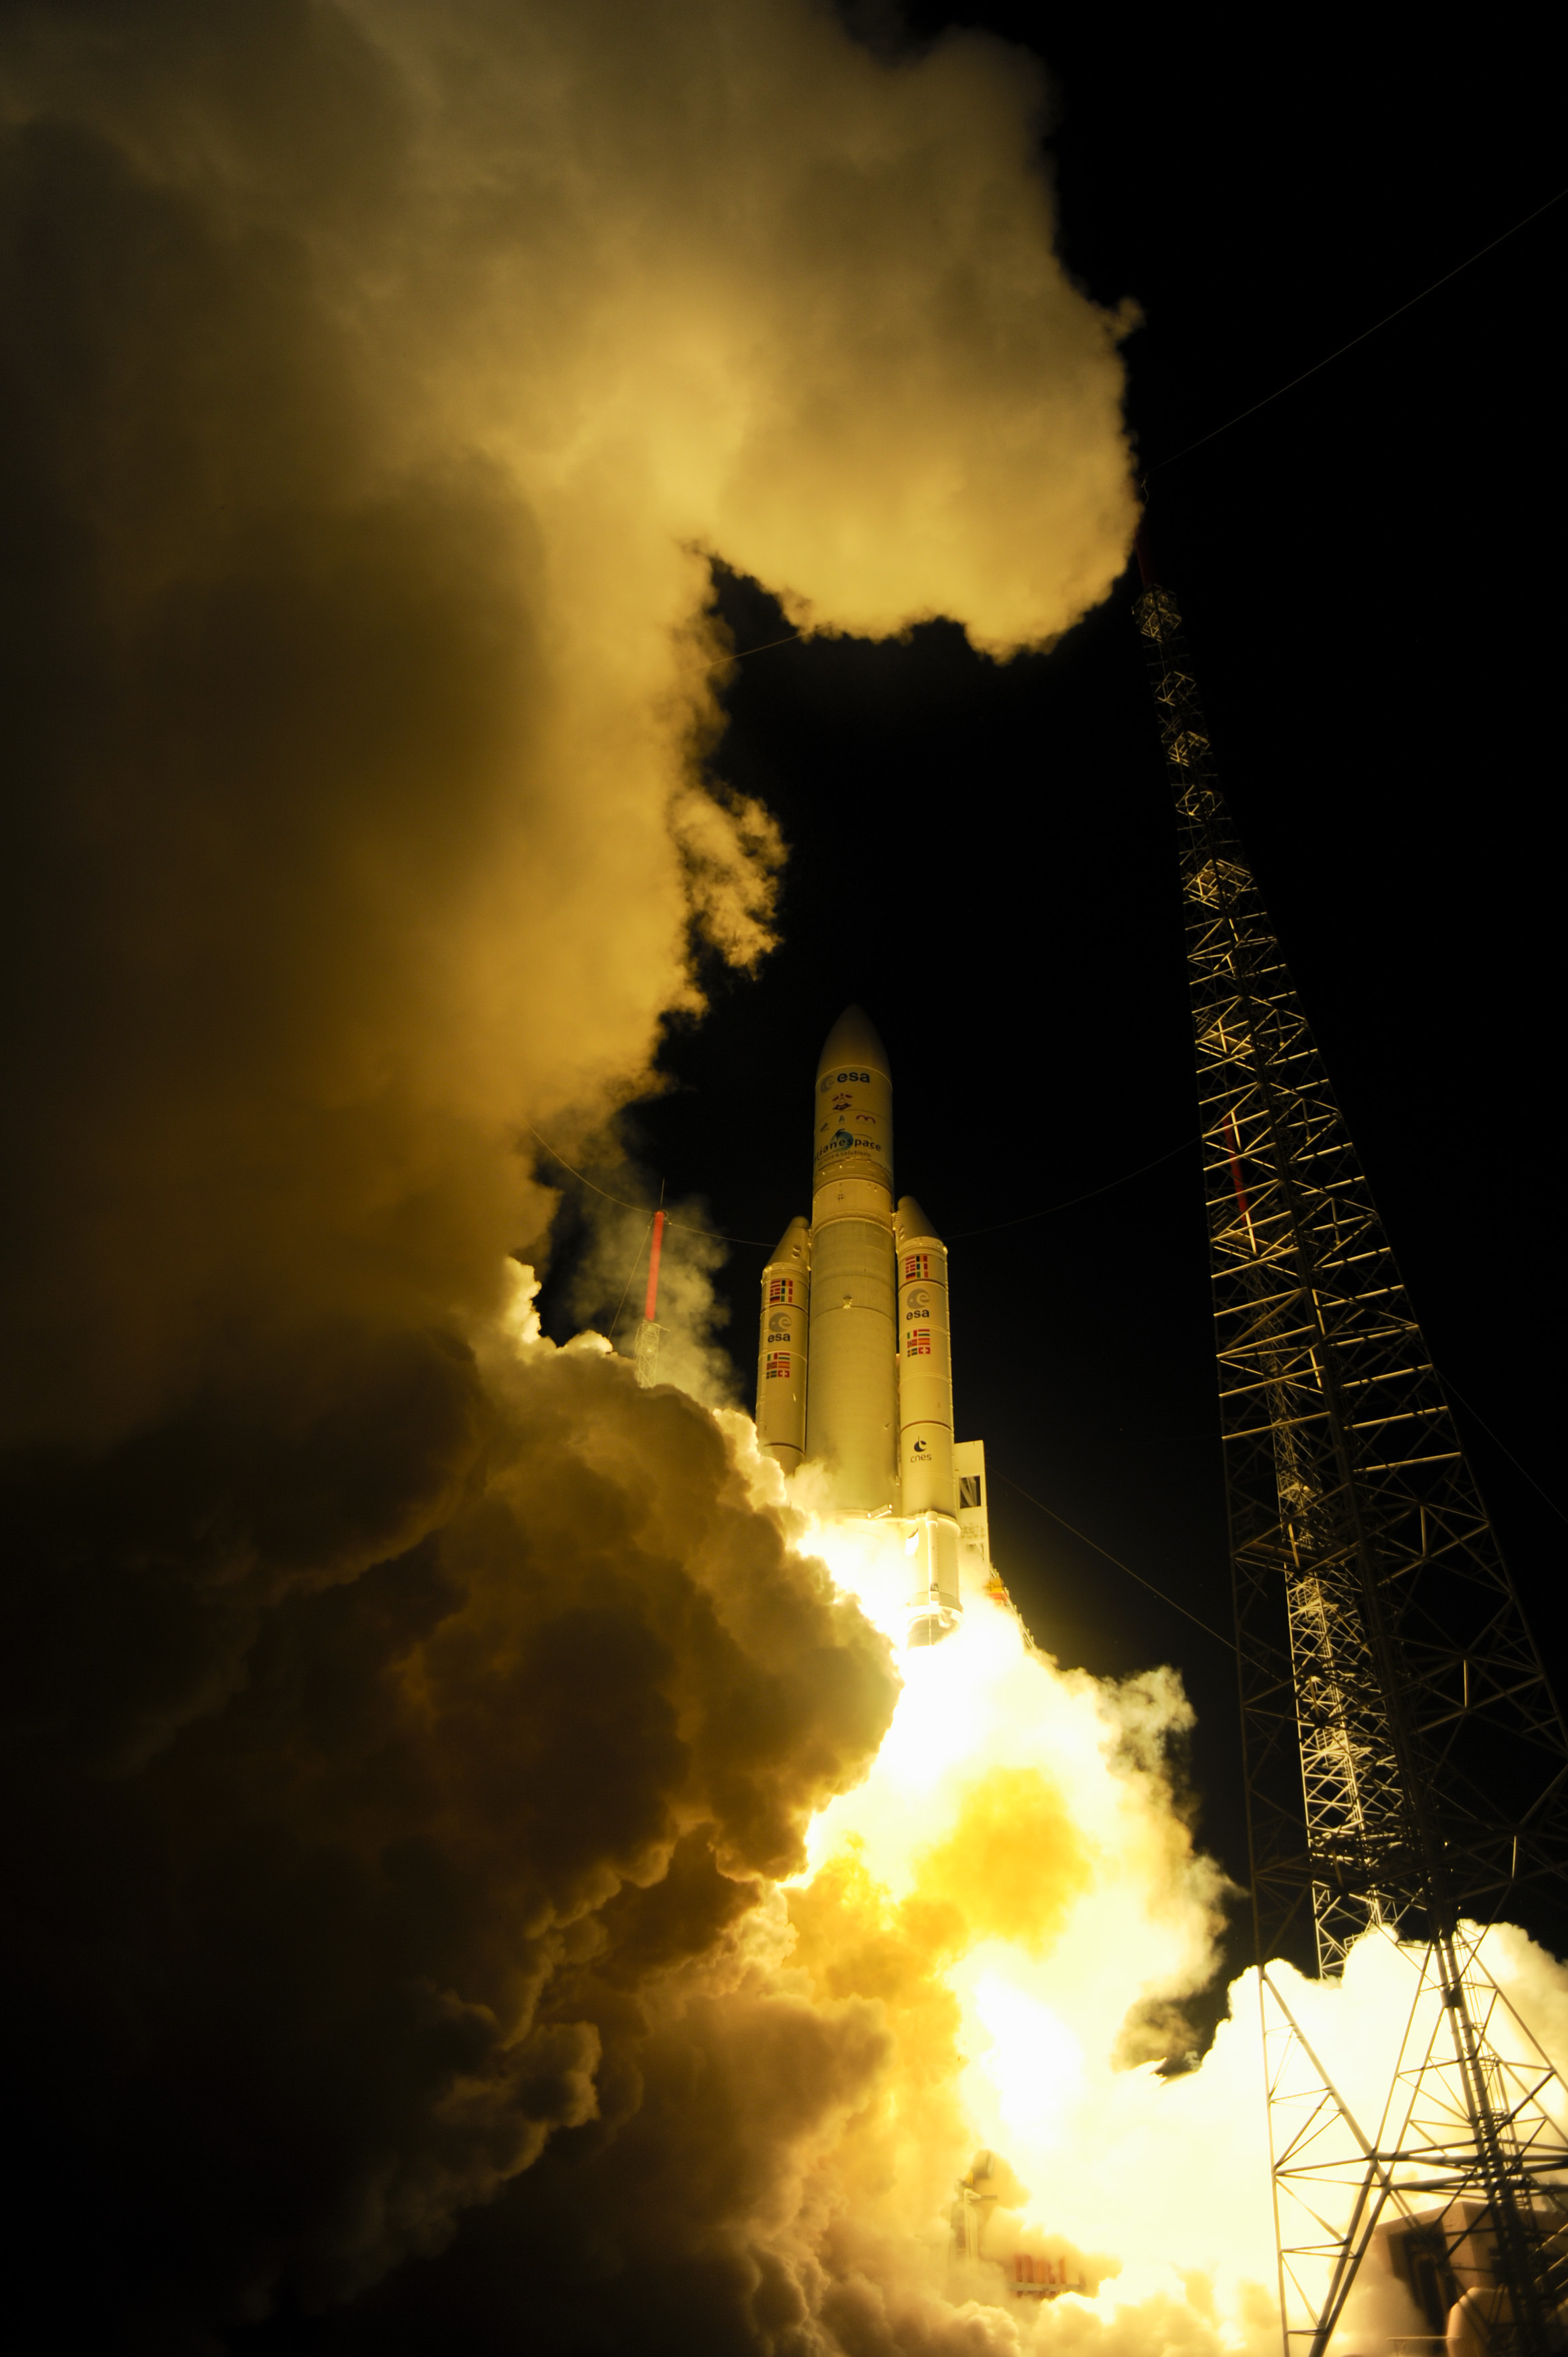 Ariane 5 Blasts Off with ATV-4 to ISS